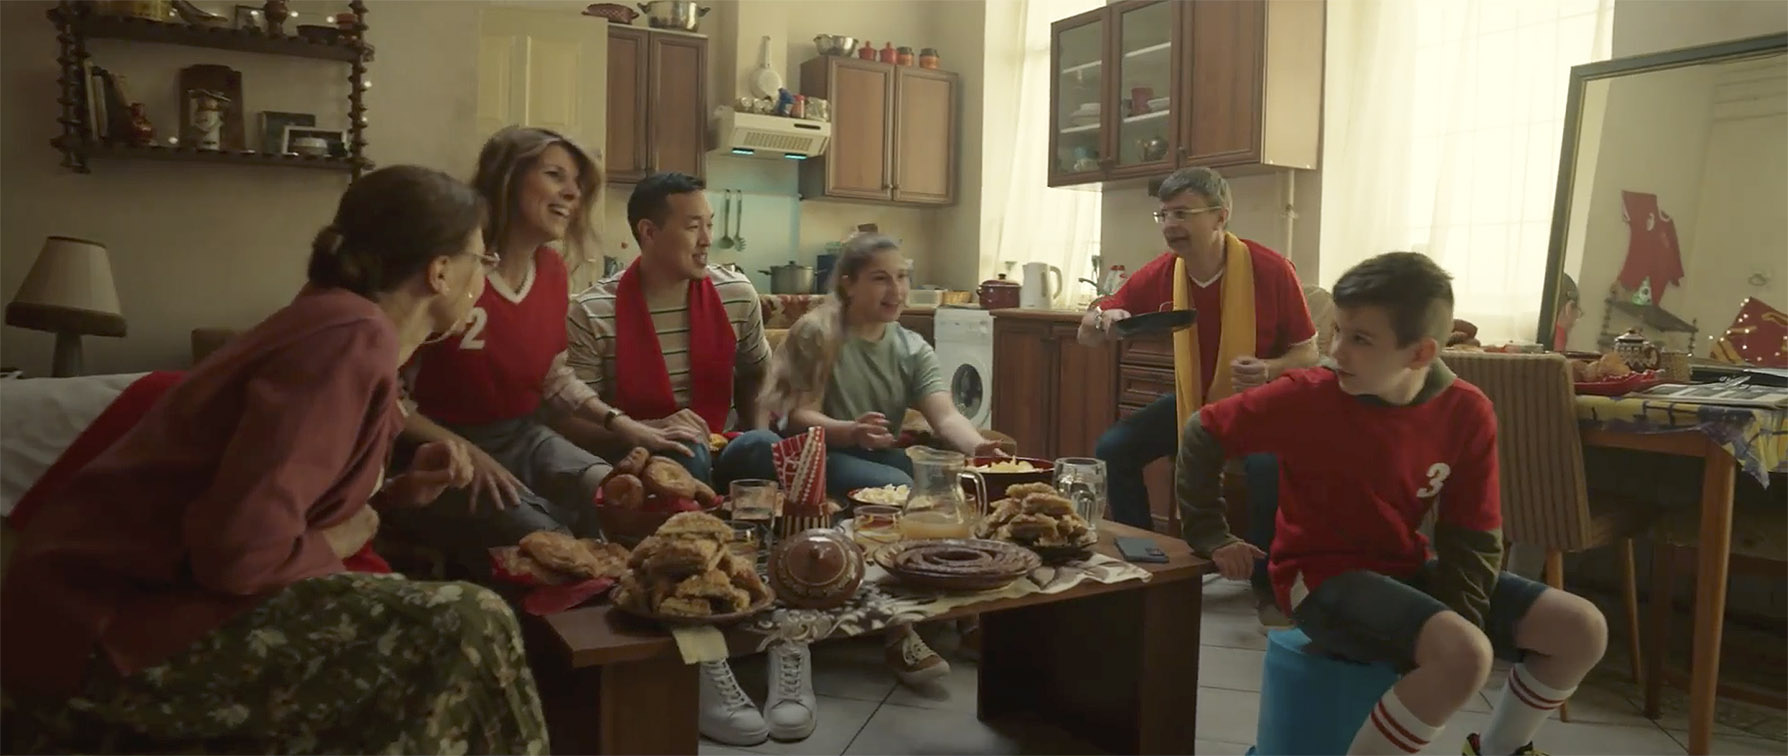 BBH Shanghai releases European Championship film for Vivo encouraging people to put down their phones